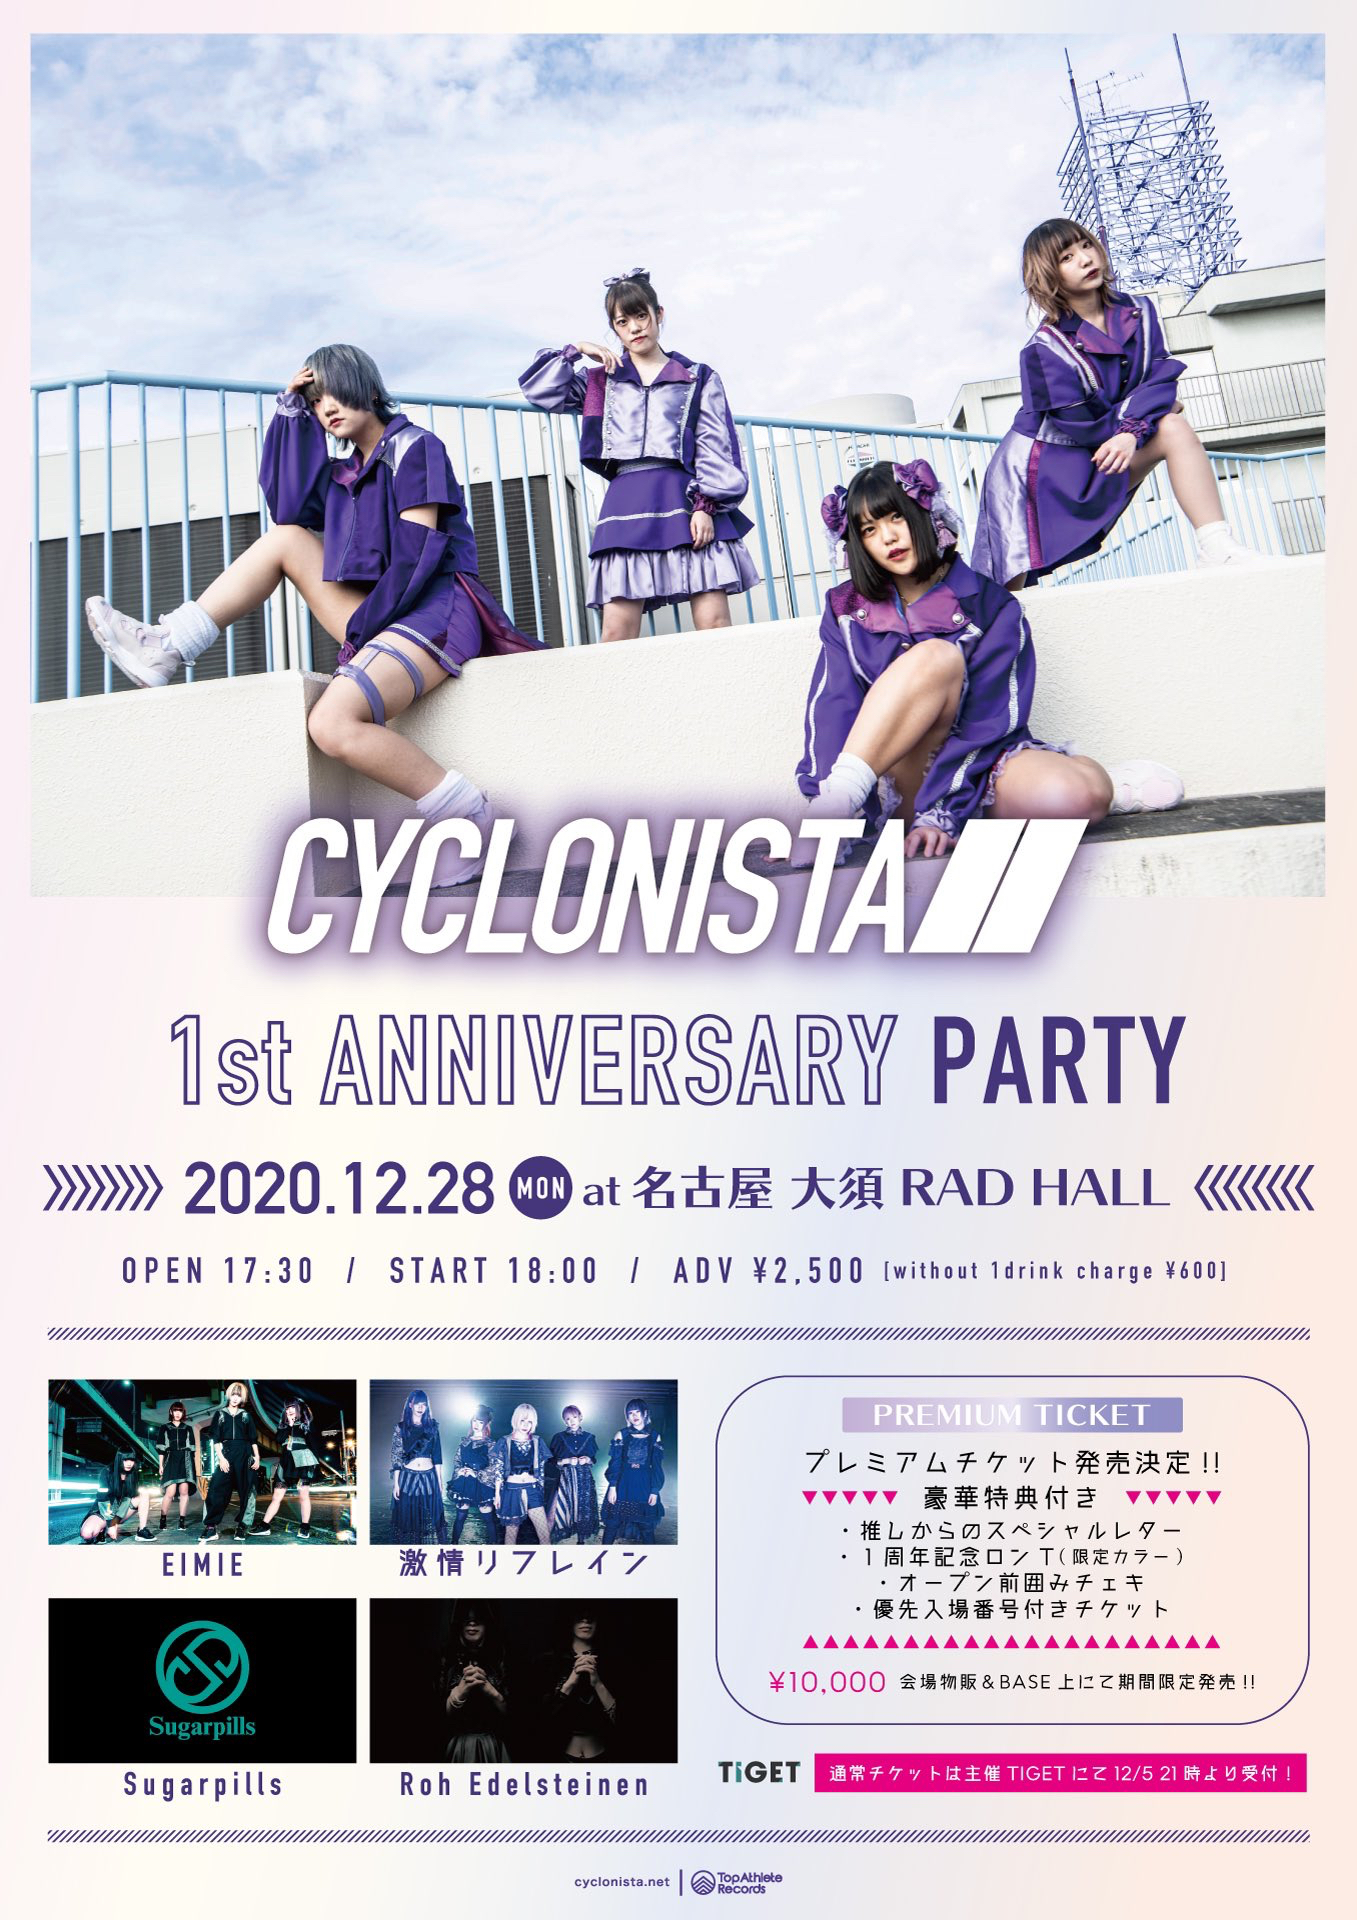 CYCLONISTA 1st ANNIVERSARY PARTY